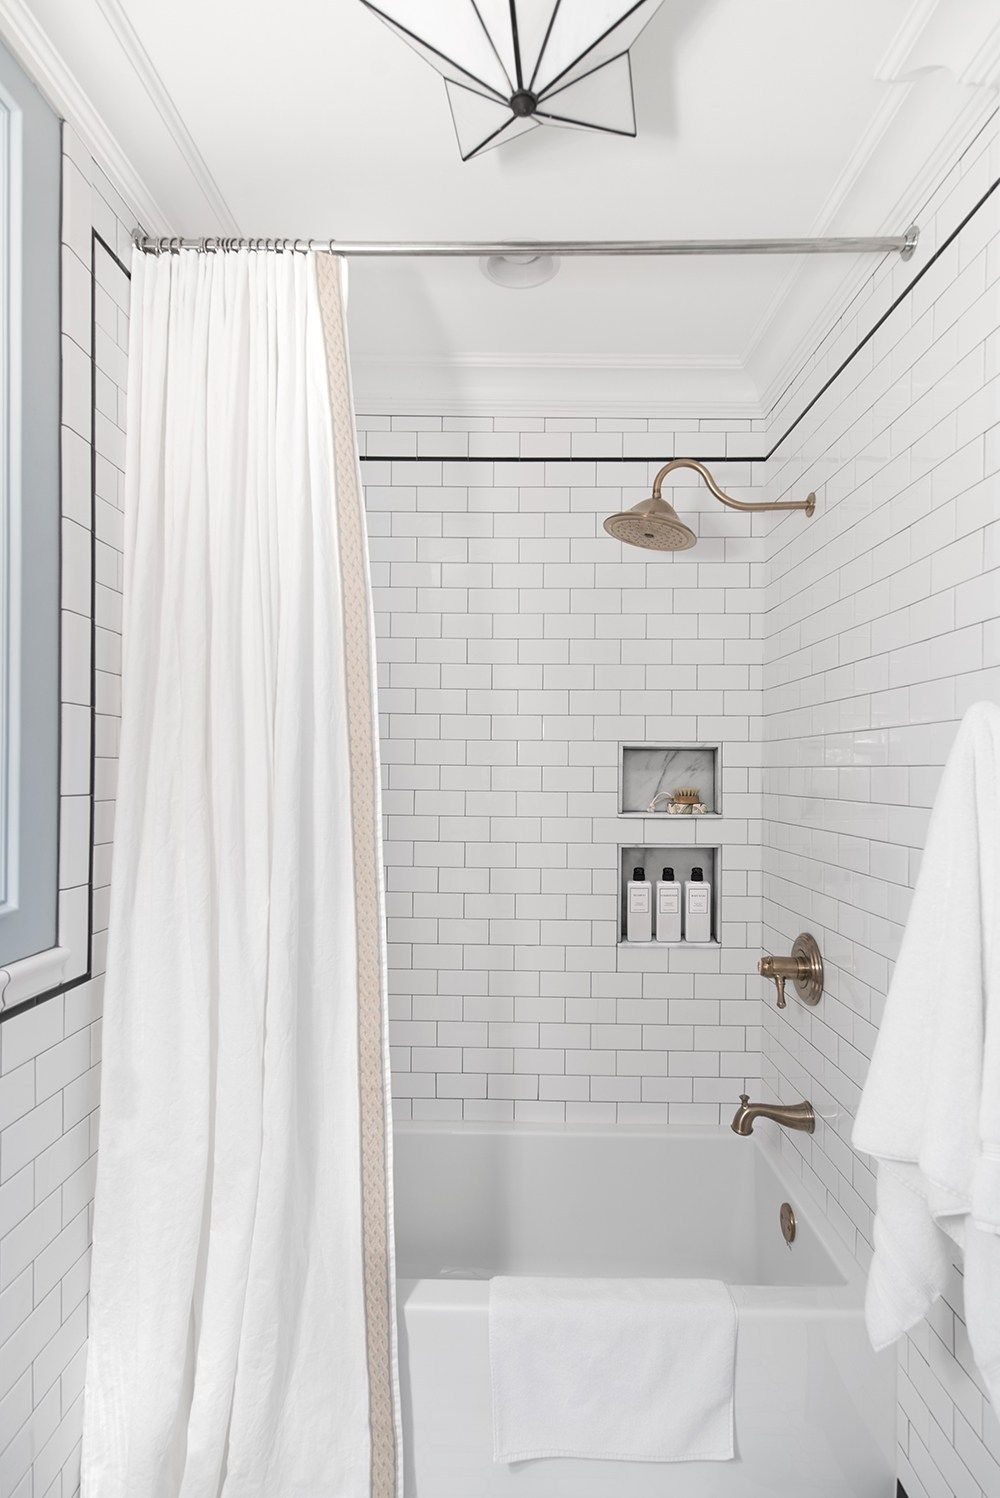 Extra Long Shower Curtain Diy Room For Tuesday Blog Long